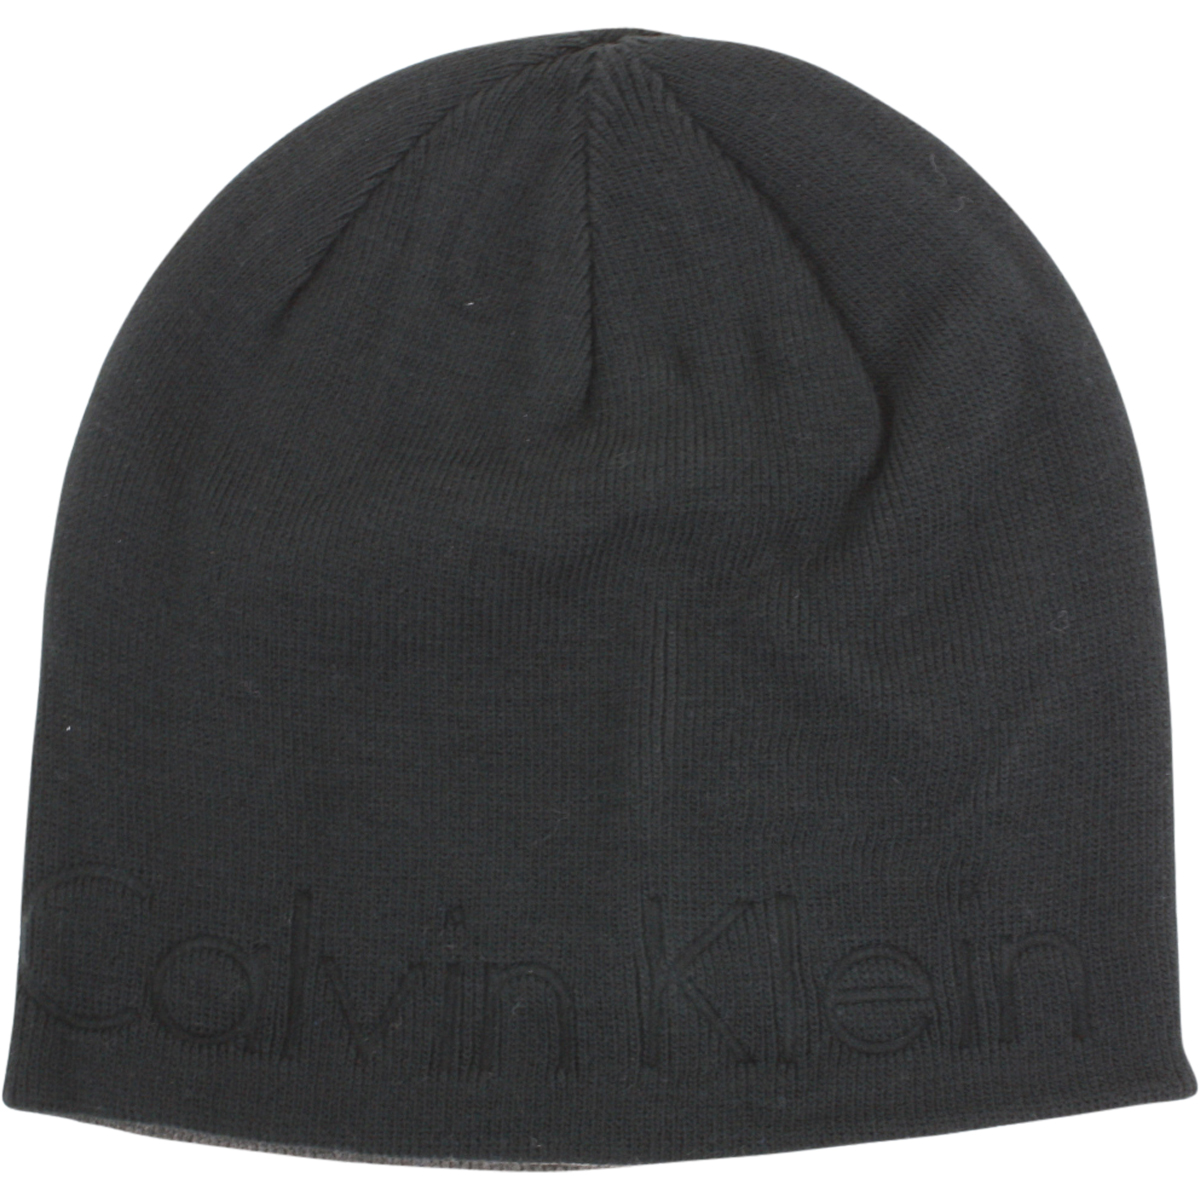 Image of Calvin Klein Men's Embossed Logo Beanie Cap Winter Hat (One Size Fits Most) - Black - One Size Fits Most